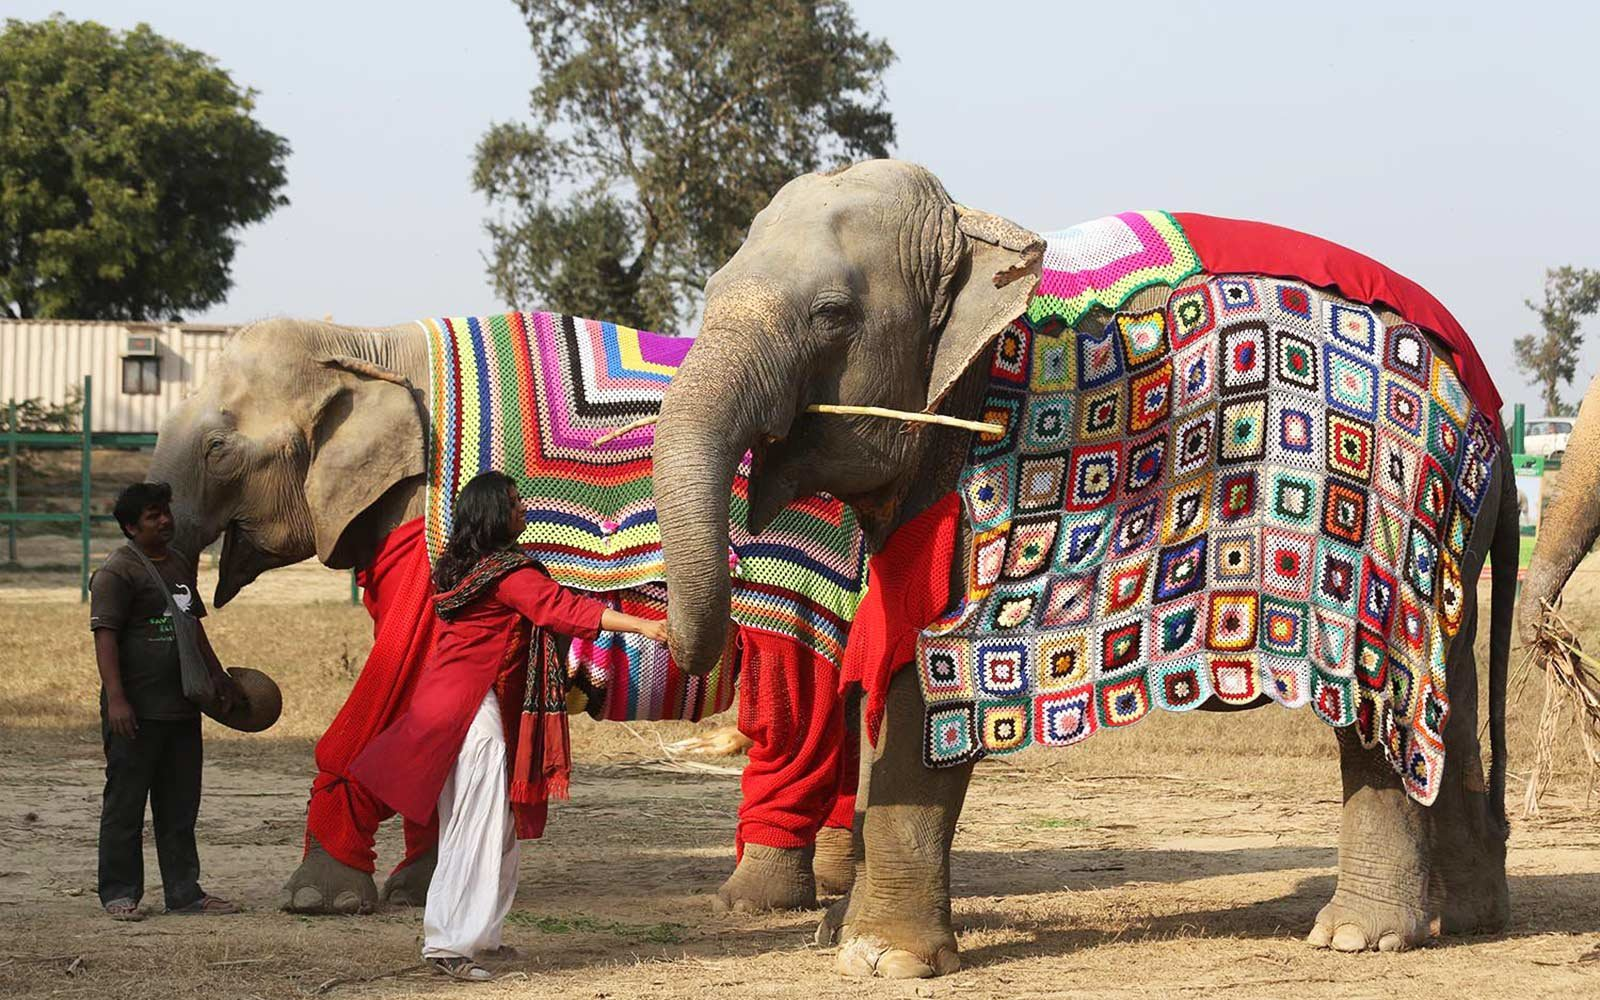 People are Knitting Giant Sweaters for Rescue Elephants | Travel + ...